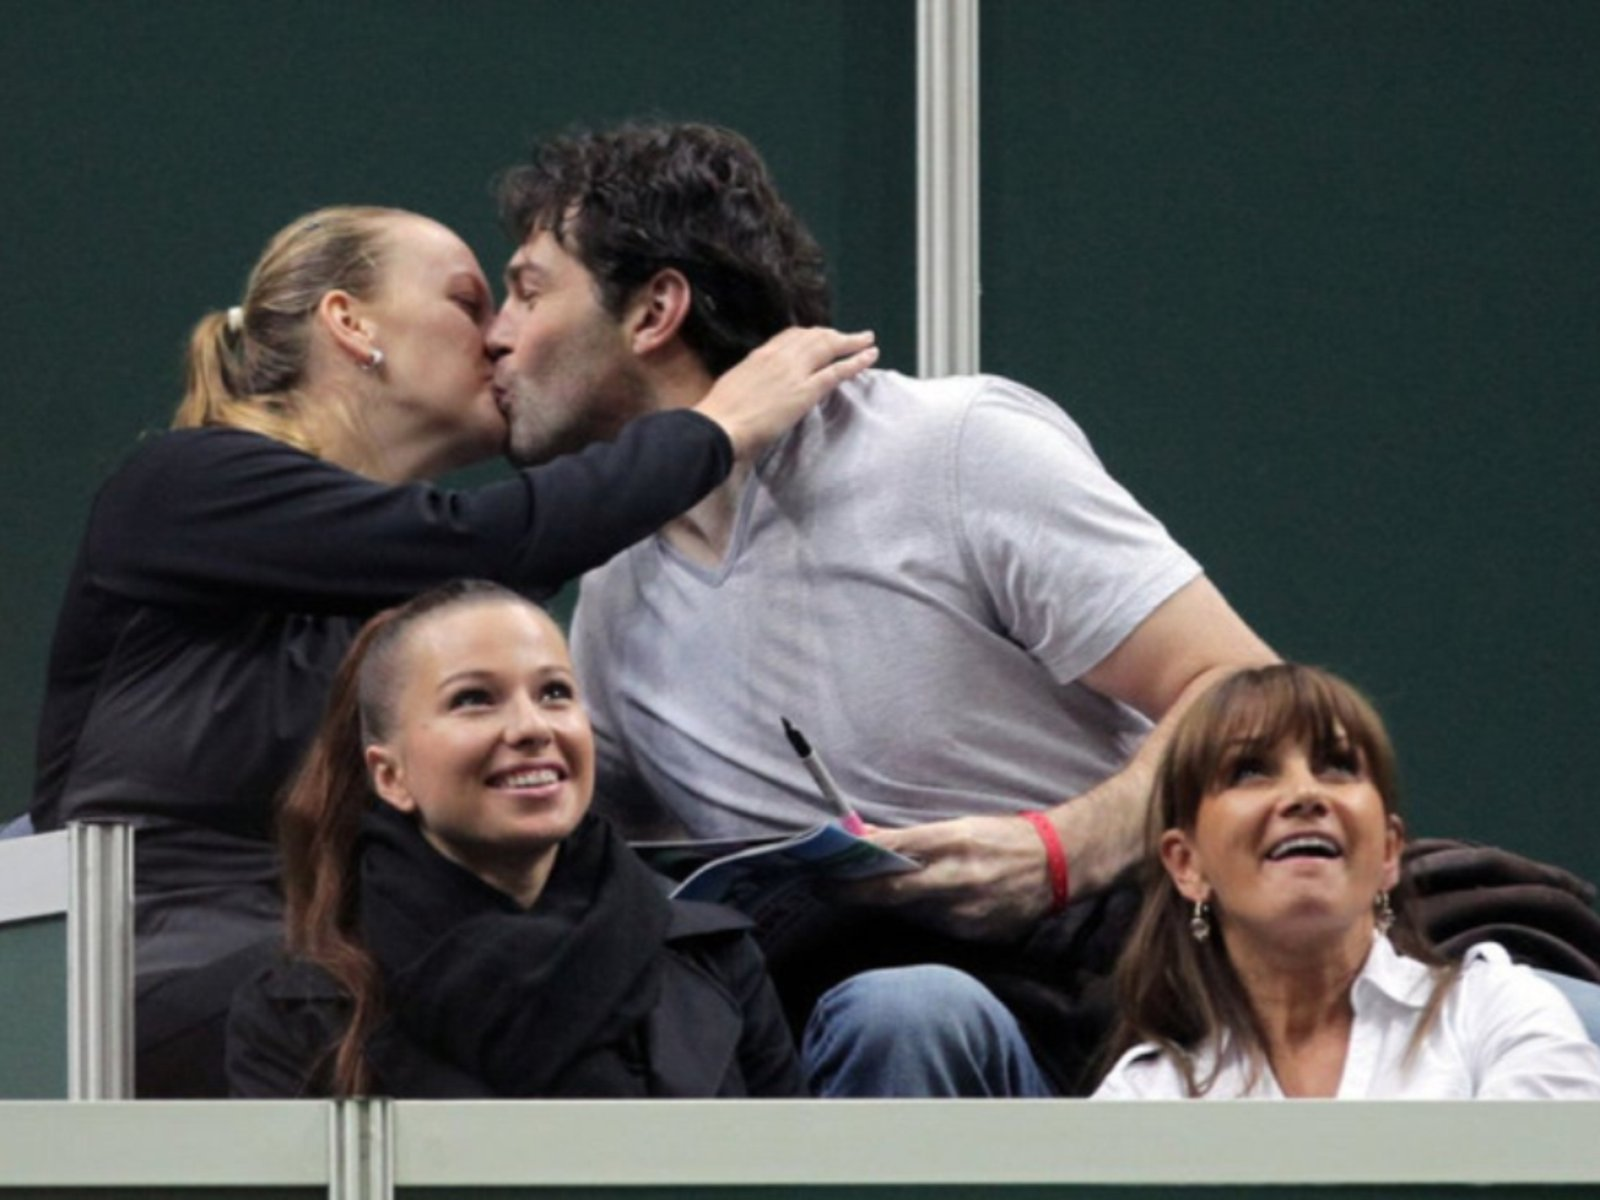 Youtube Images Kvitova And Jagr Kissing Beside Tennis Court Hd